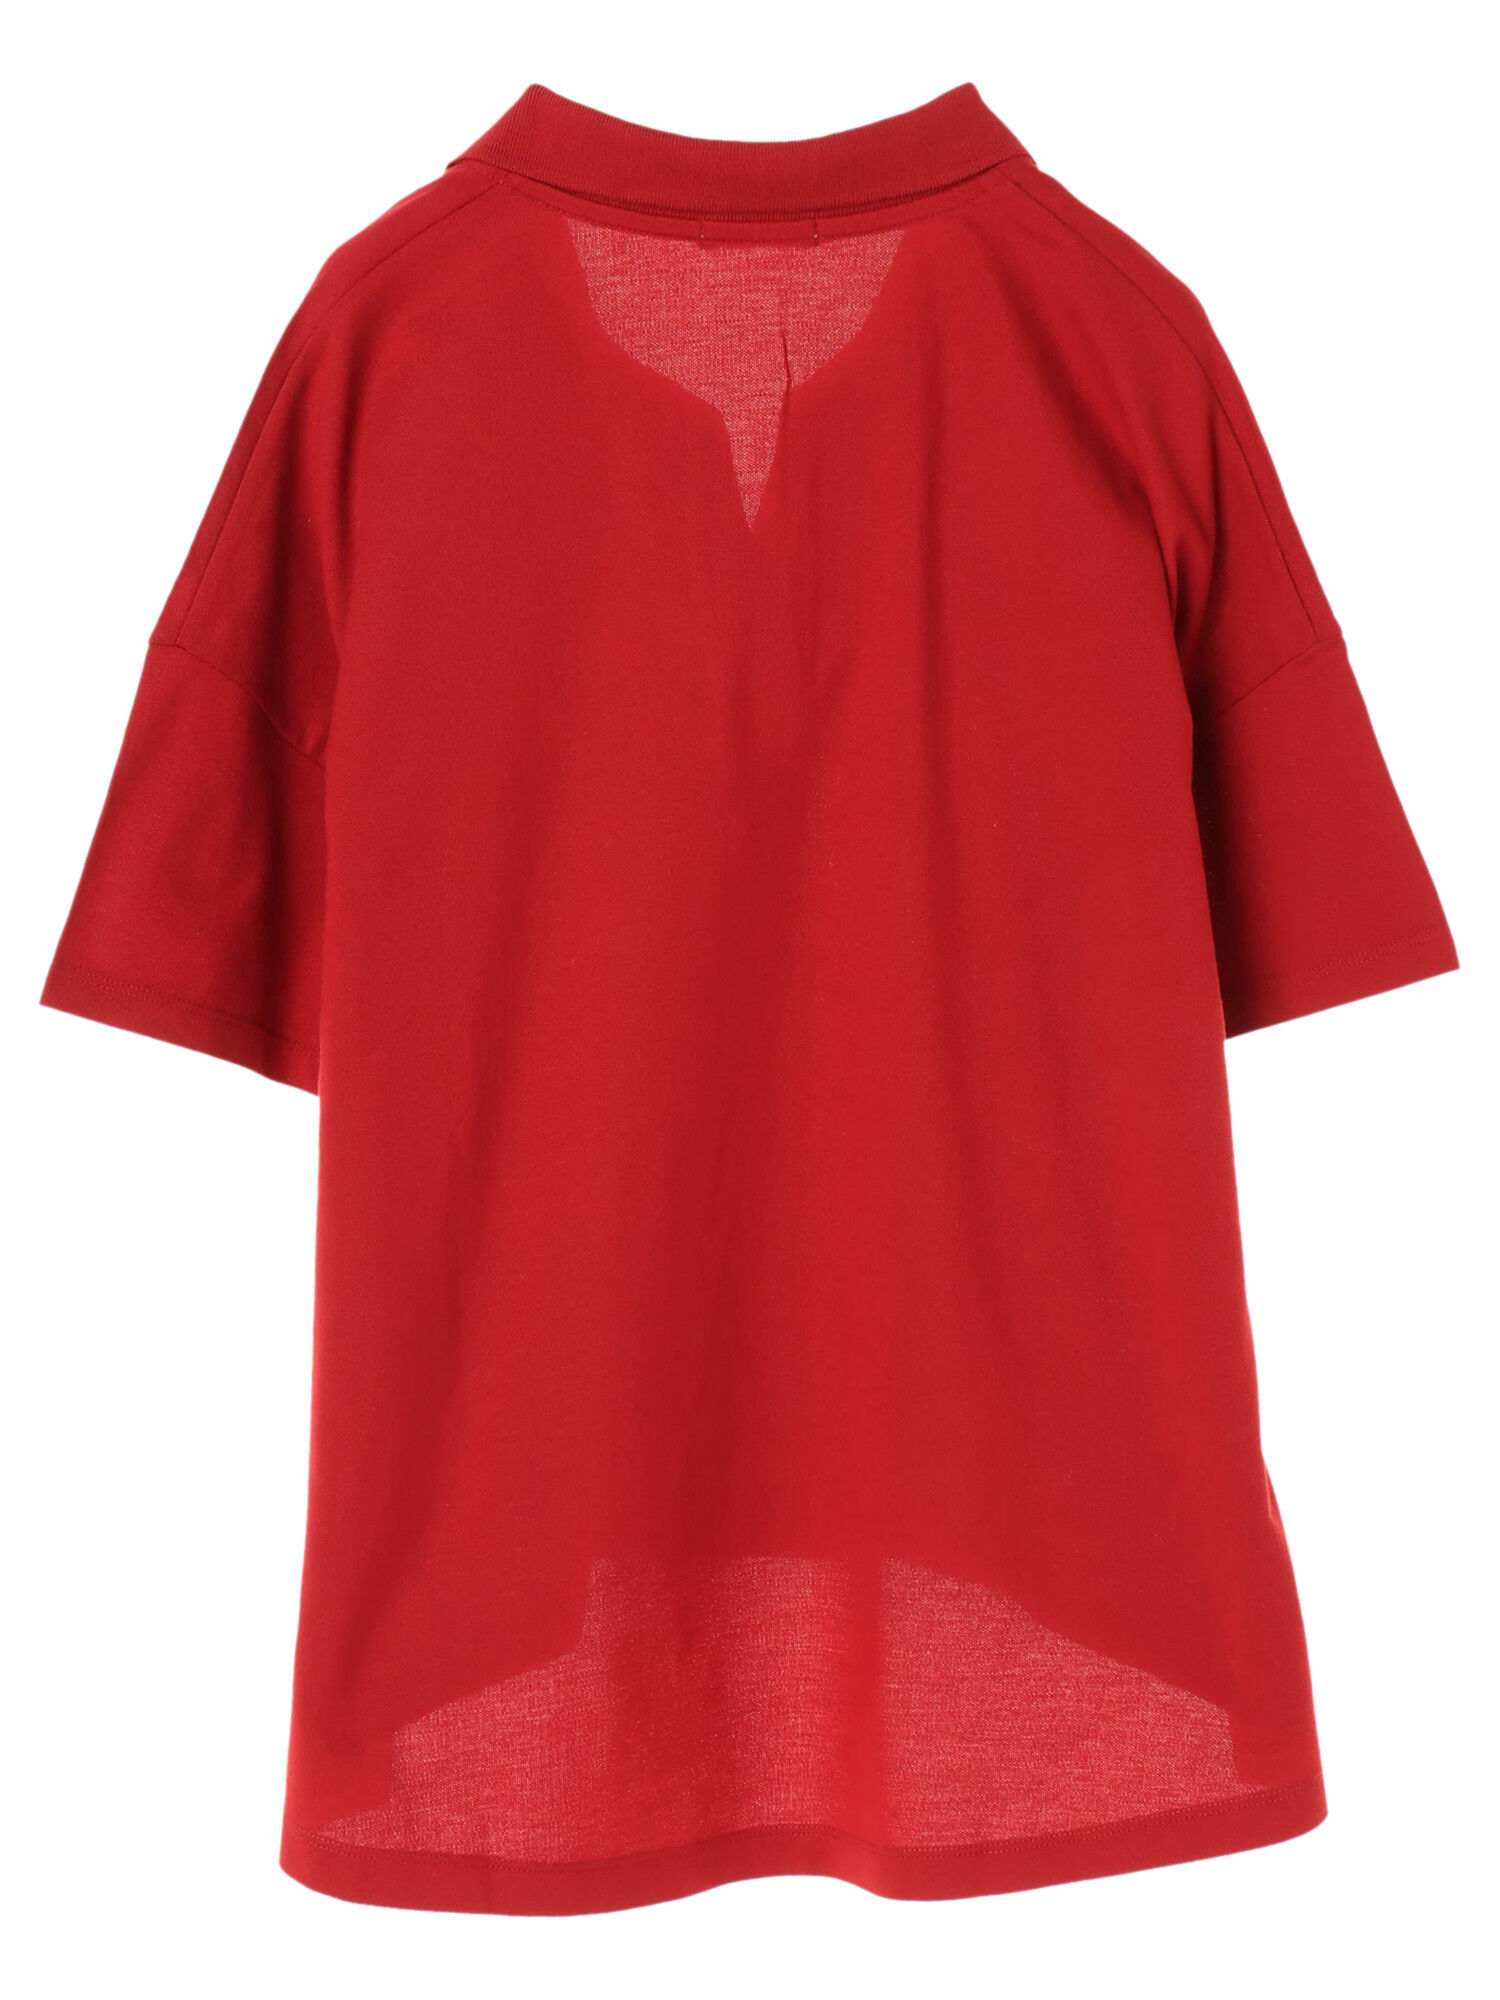 Earth, Music & Ecology Yurimi Top - Red